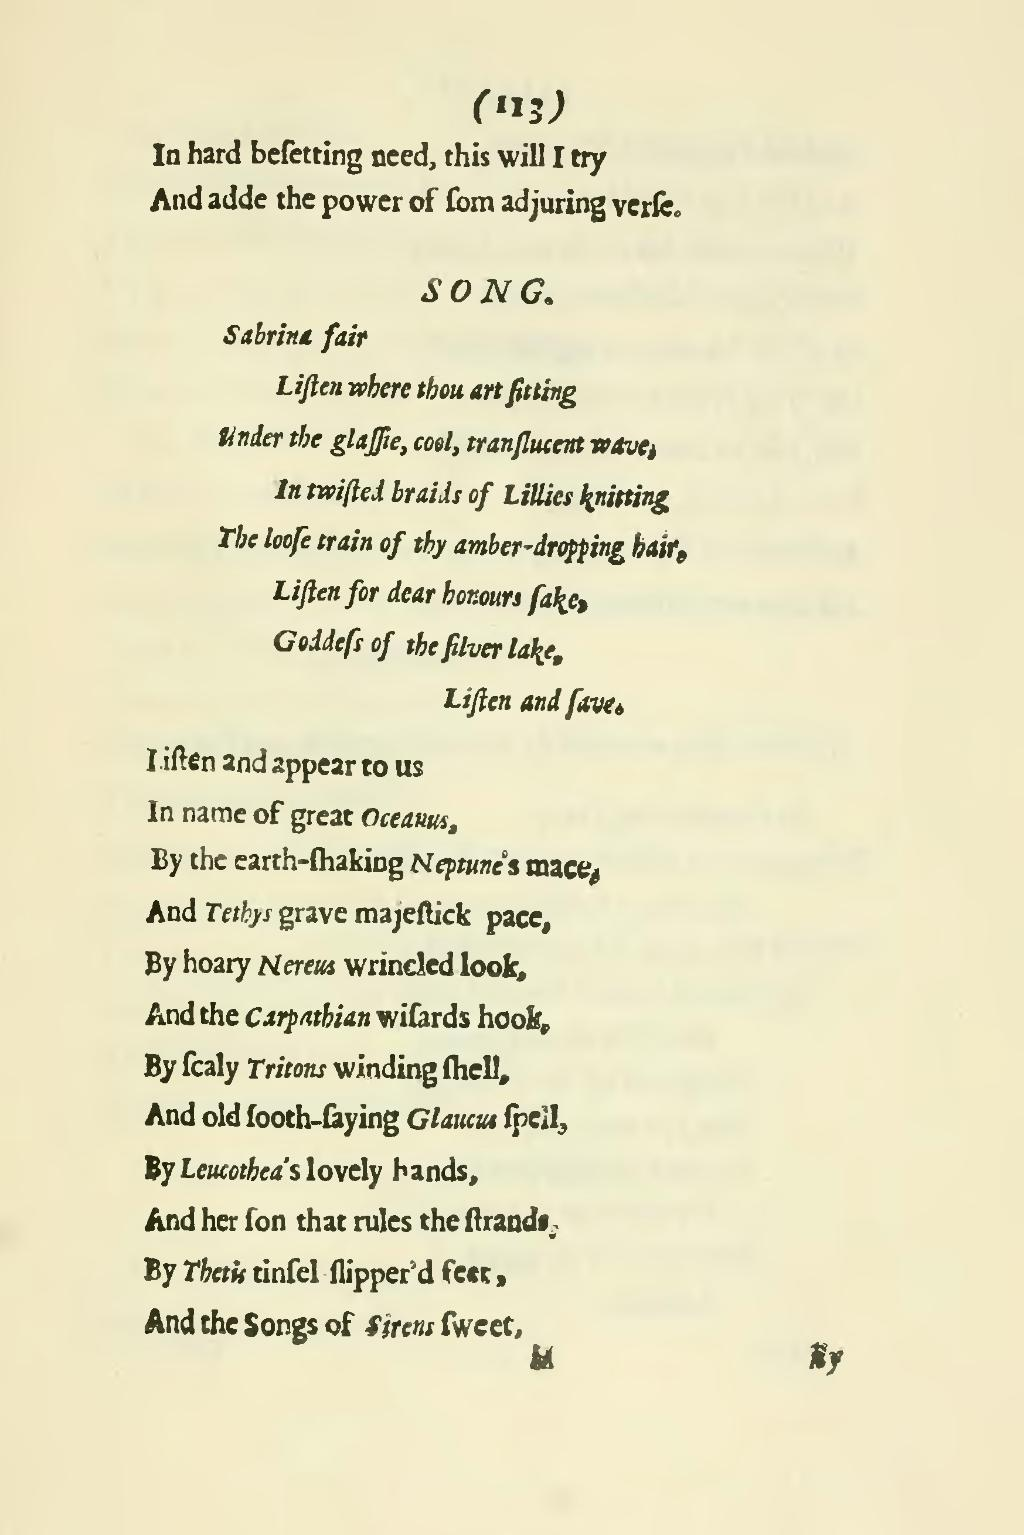 pagepoems of mr john milton both english and latin